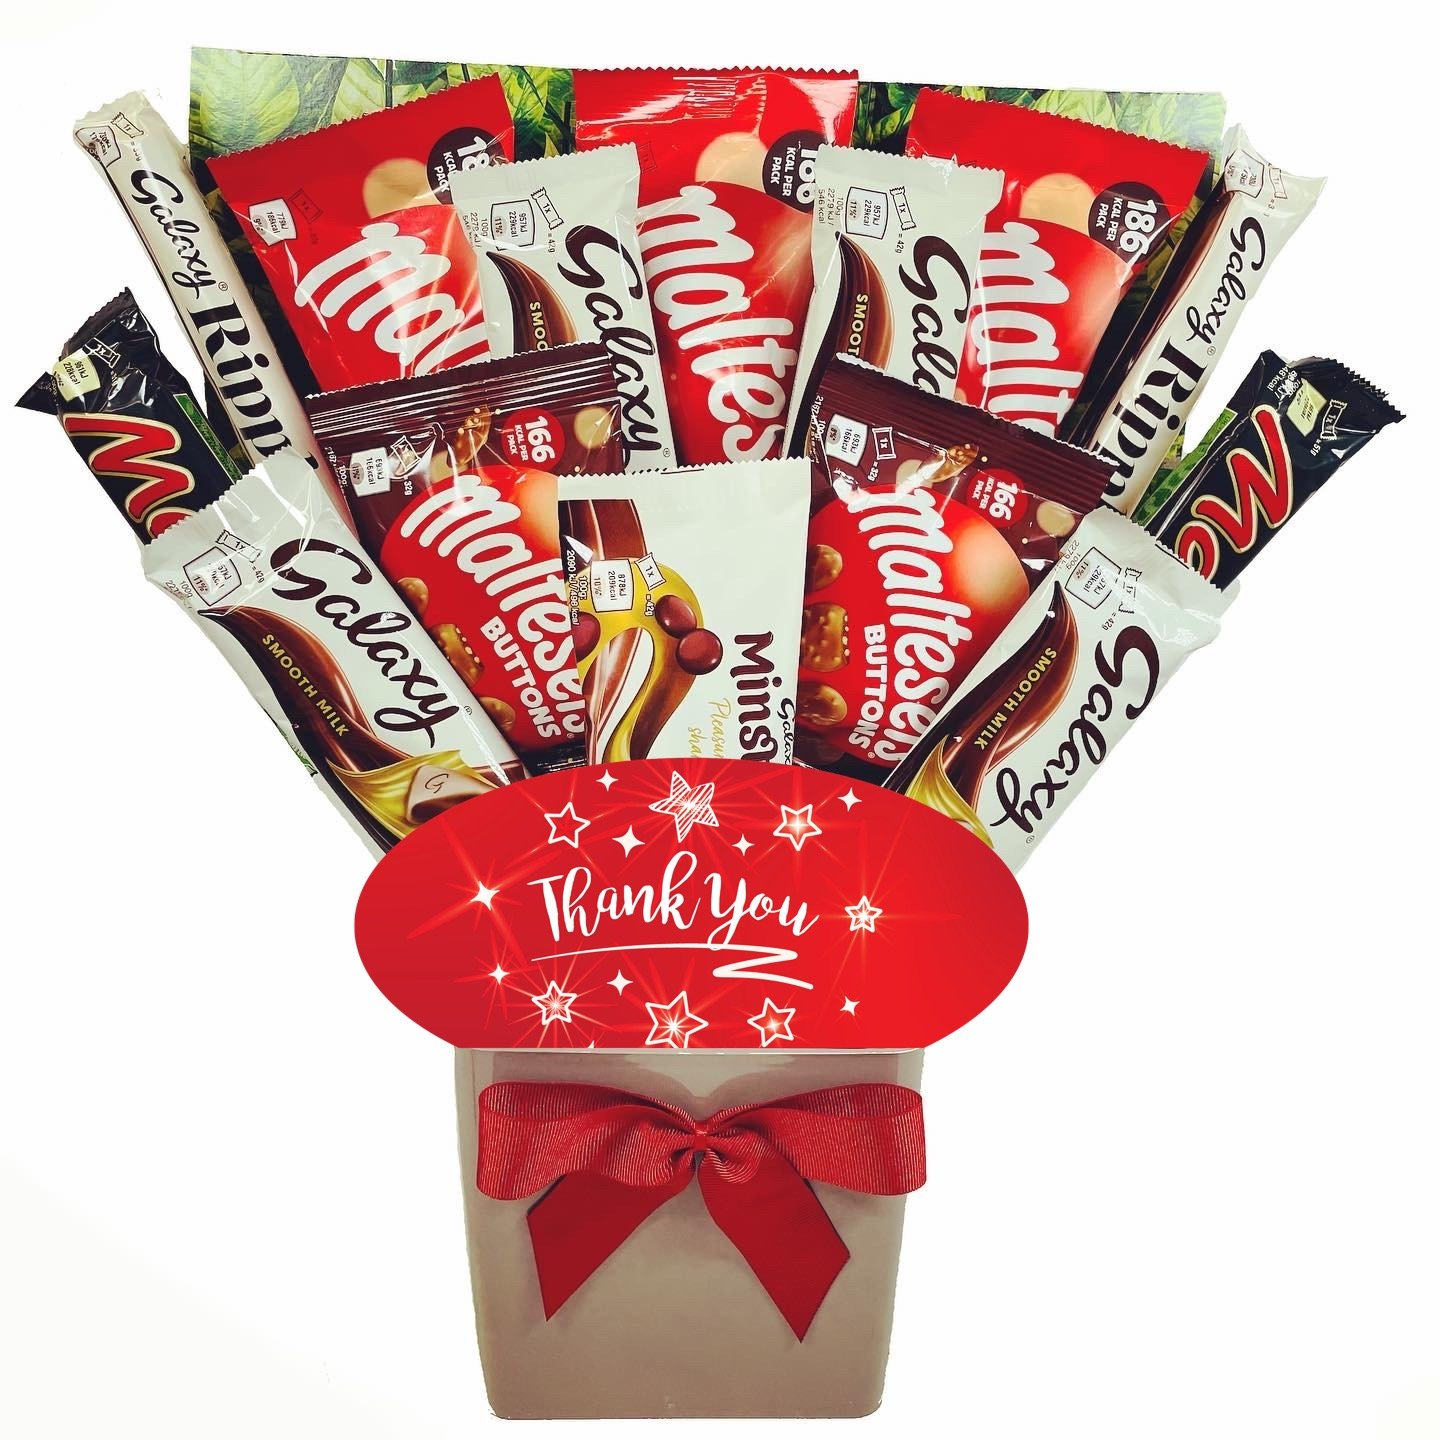 The Thank You Galaxy Chocolate Bouquet